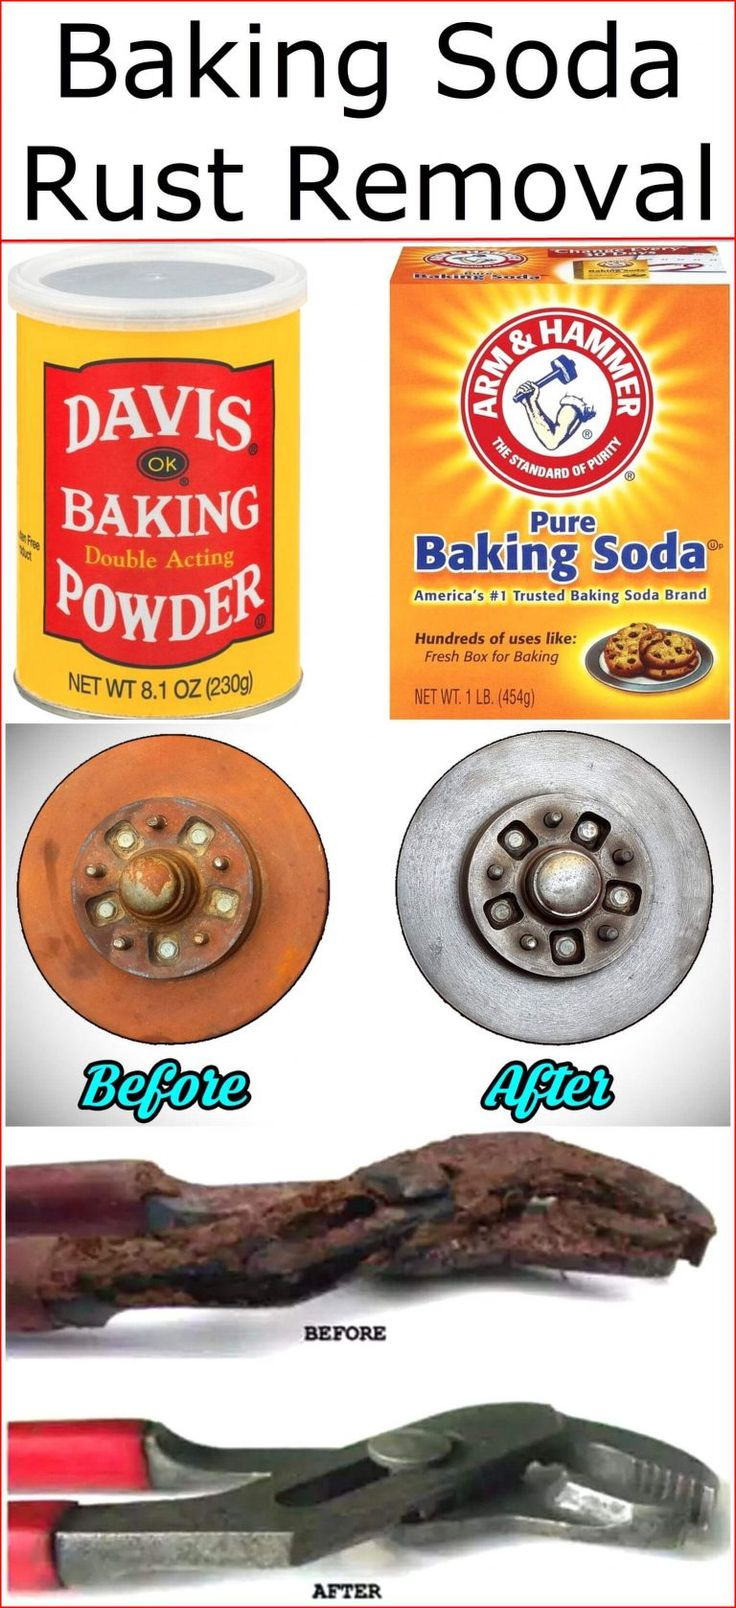 Baking soda rust removal on baking soda uses and diy home